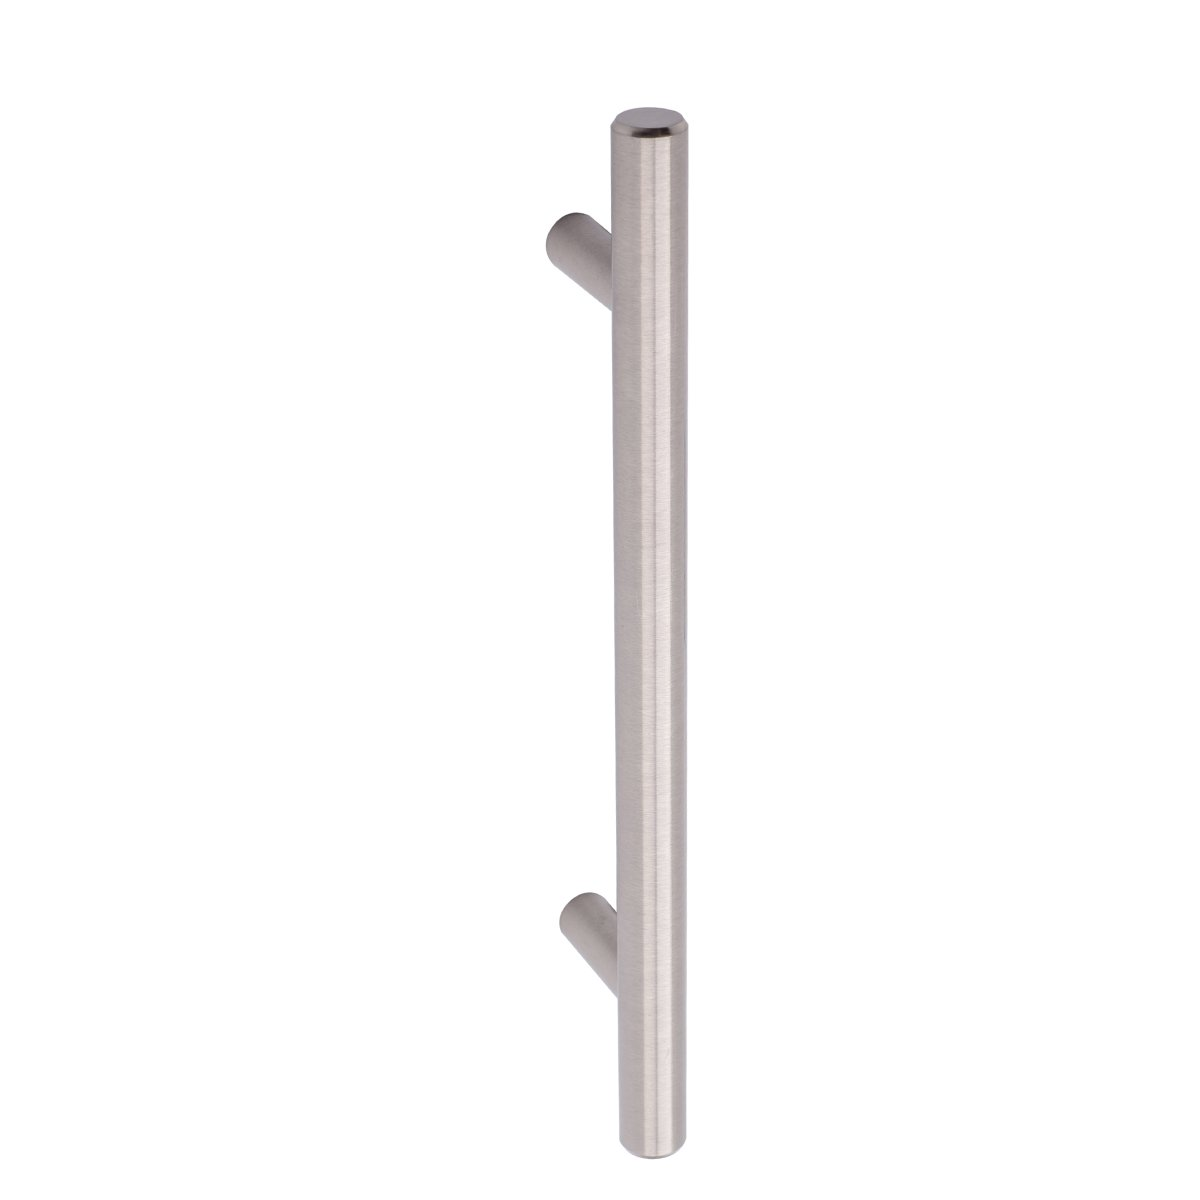 AmazonBasics Euro Bar Kitchen Cabinet Handle 1/2 Inch Diameter, 7.38 Inch Length, 5 Inch Hole Center, Satin Nickel, 25-Pack by AmazonBasics (Image #3)